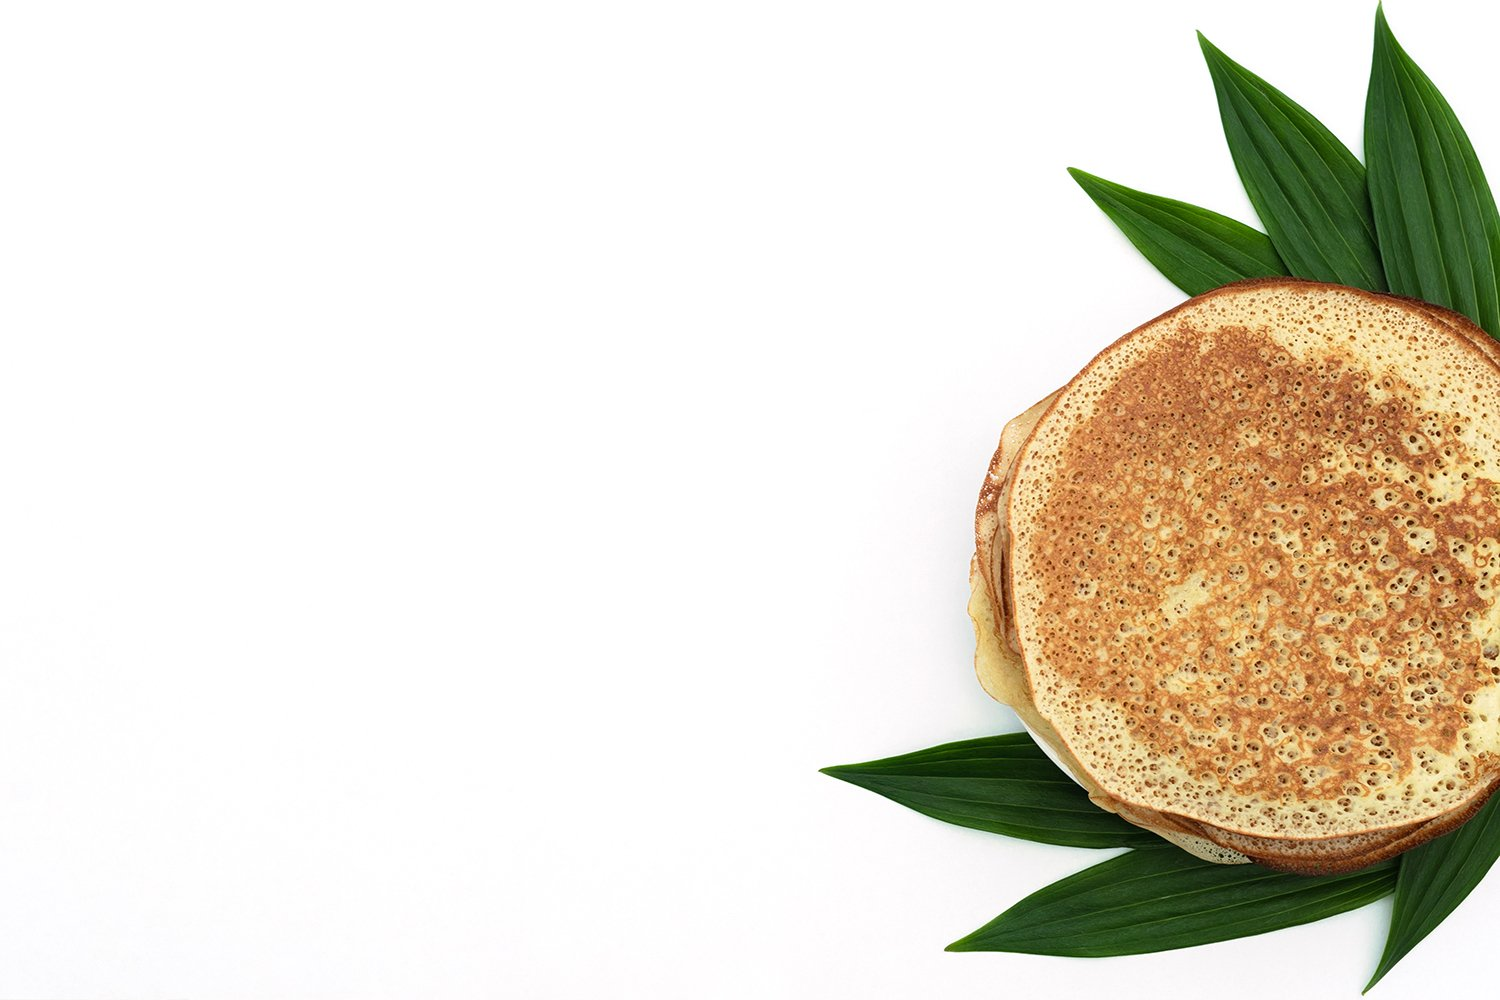 Homemade pancakes on white background with green leaves example image 1